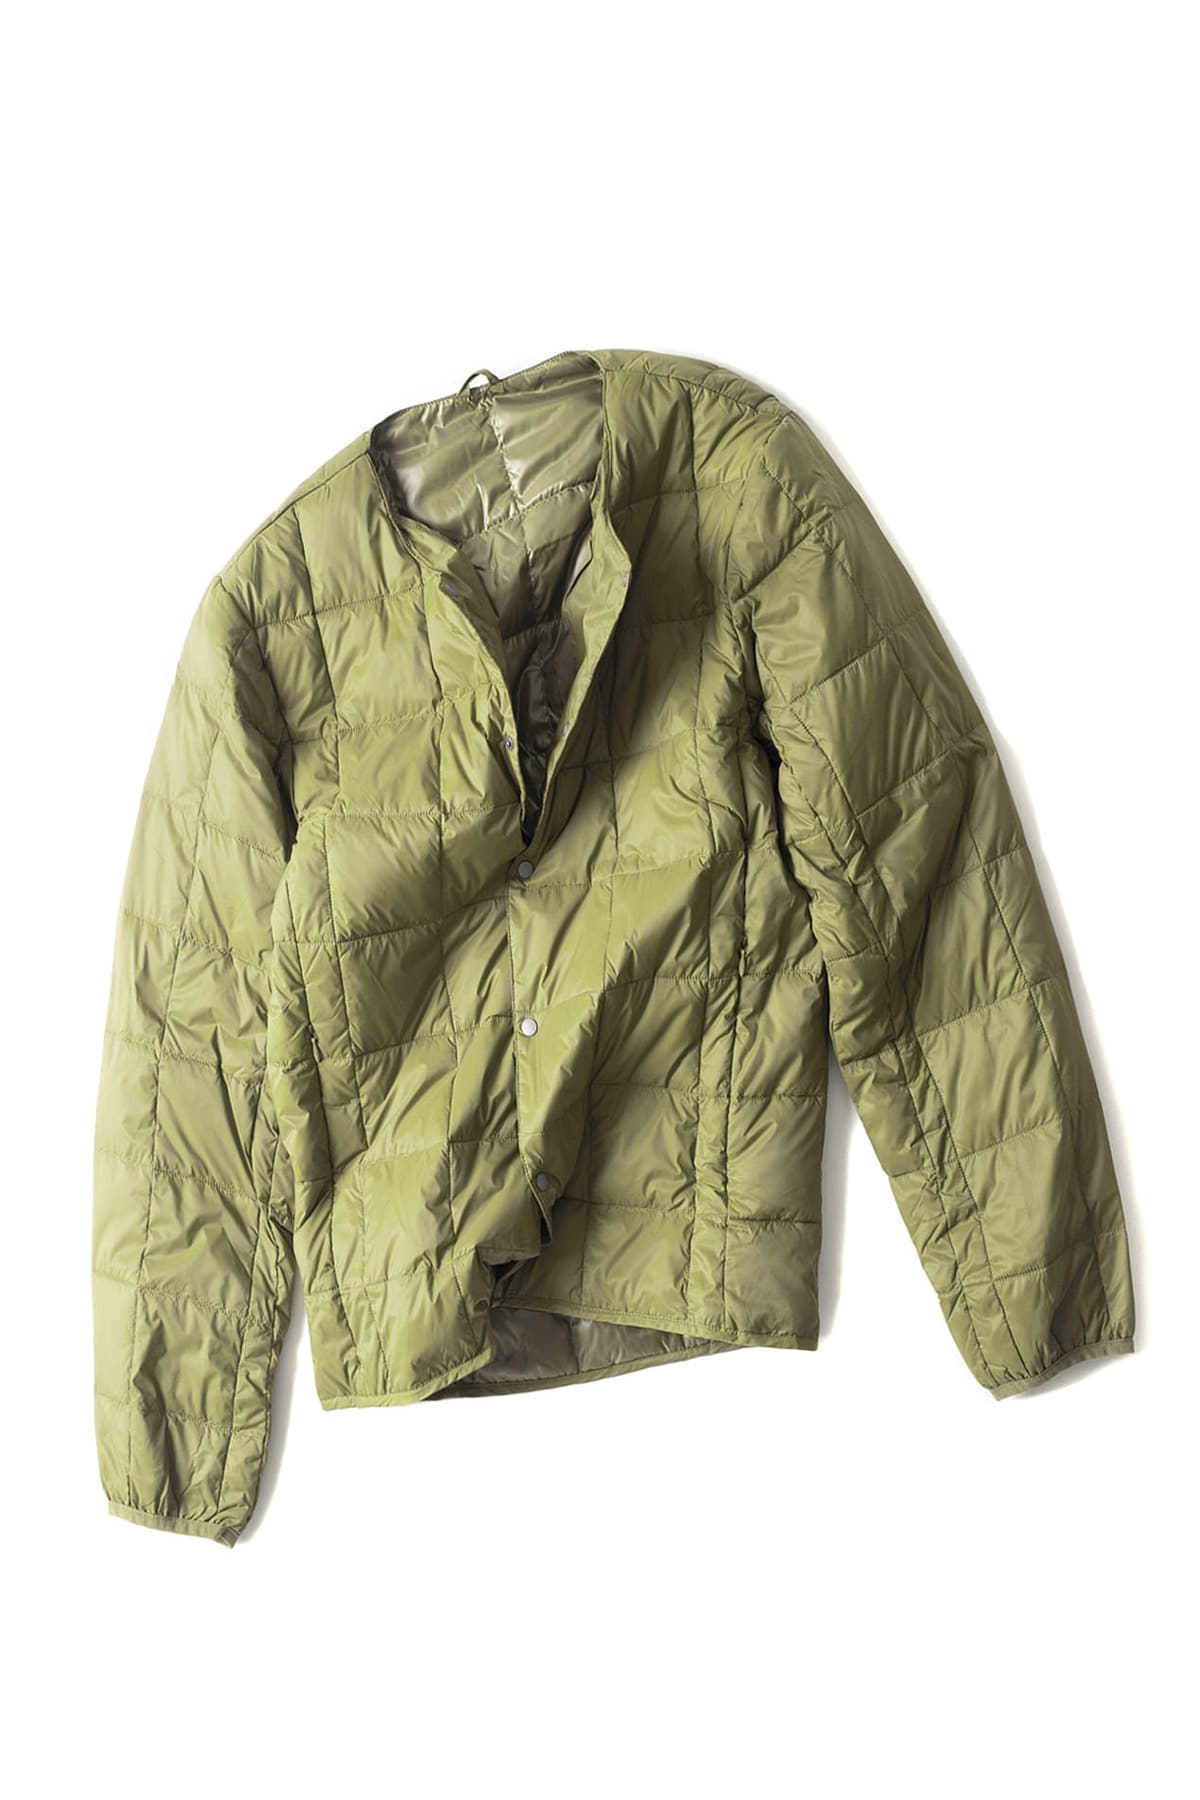 TAION : Crew Next Button Down Jacket (Olive)